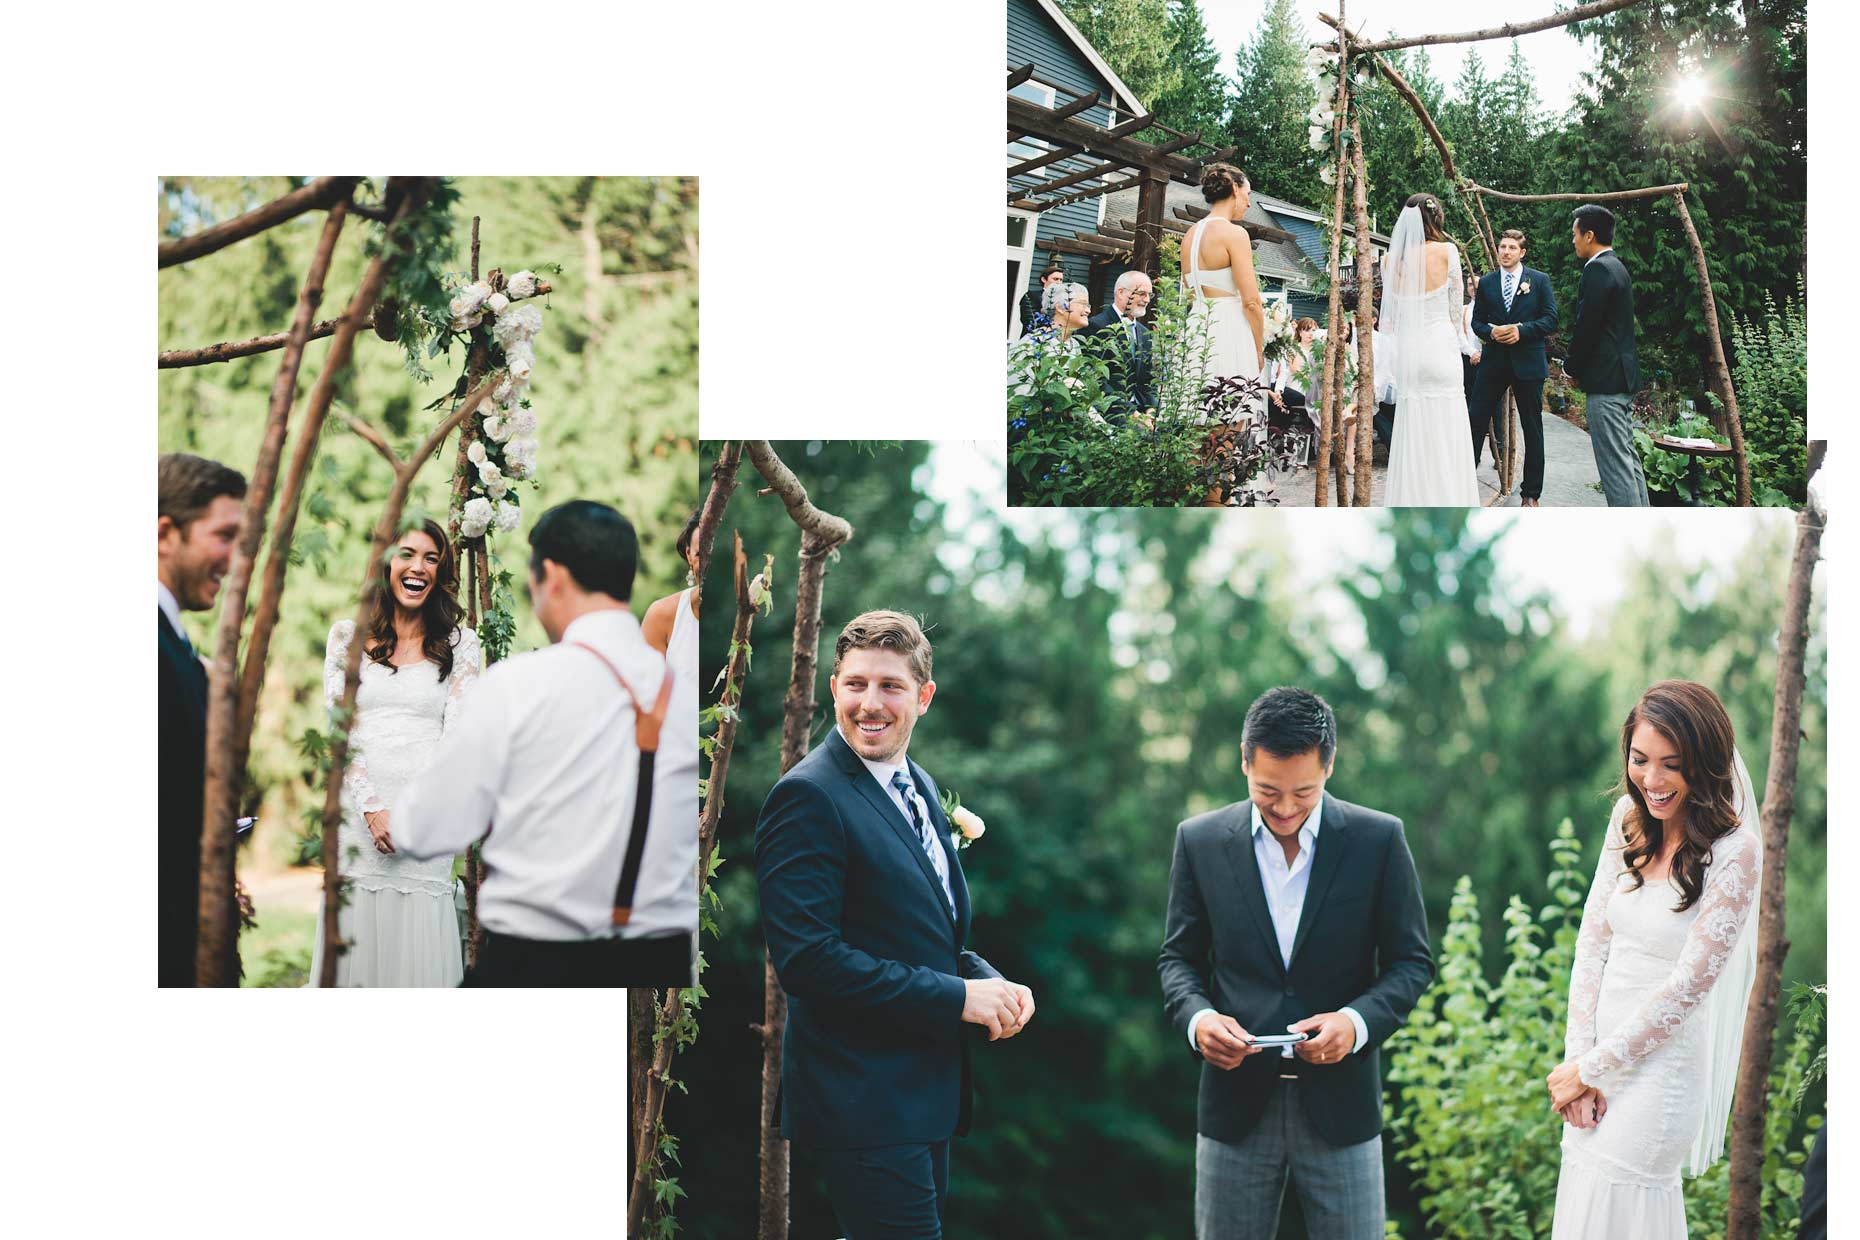 43-Seattle-Wedding-Photographer-_-Pierre-olivier-Photography-7